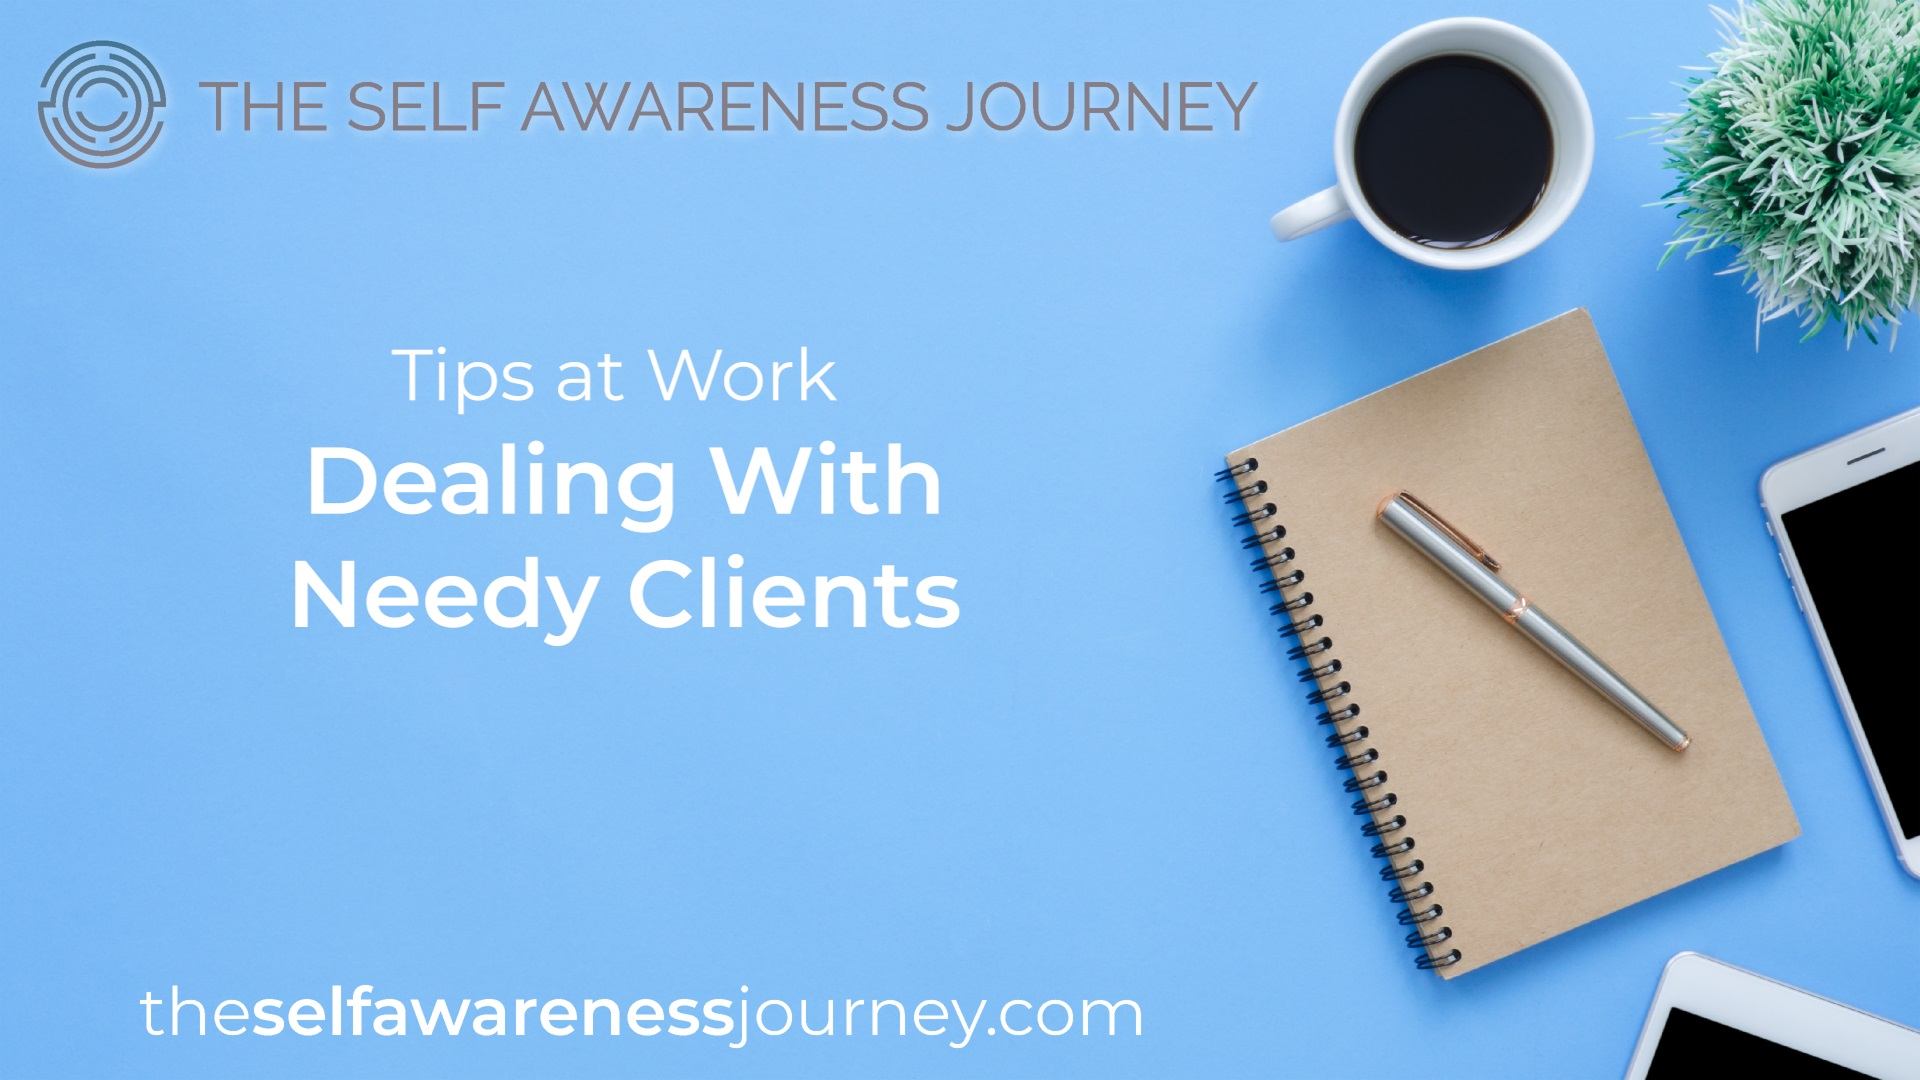 Dealing With Needy Clients